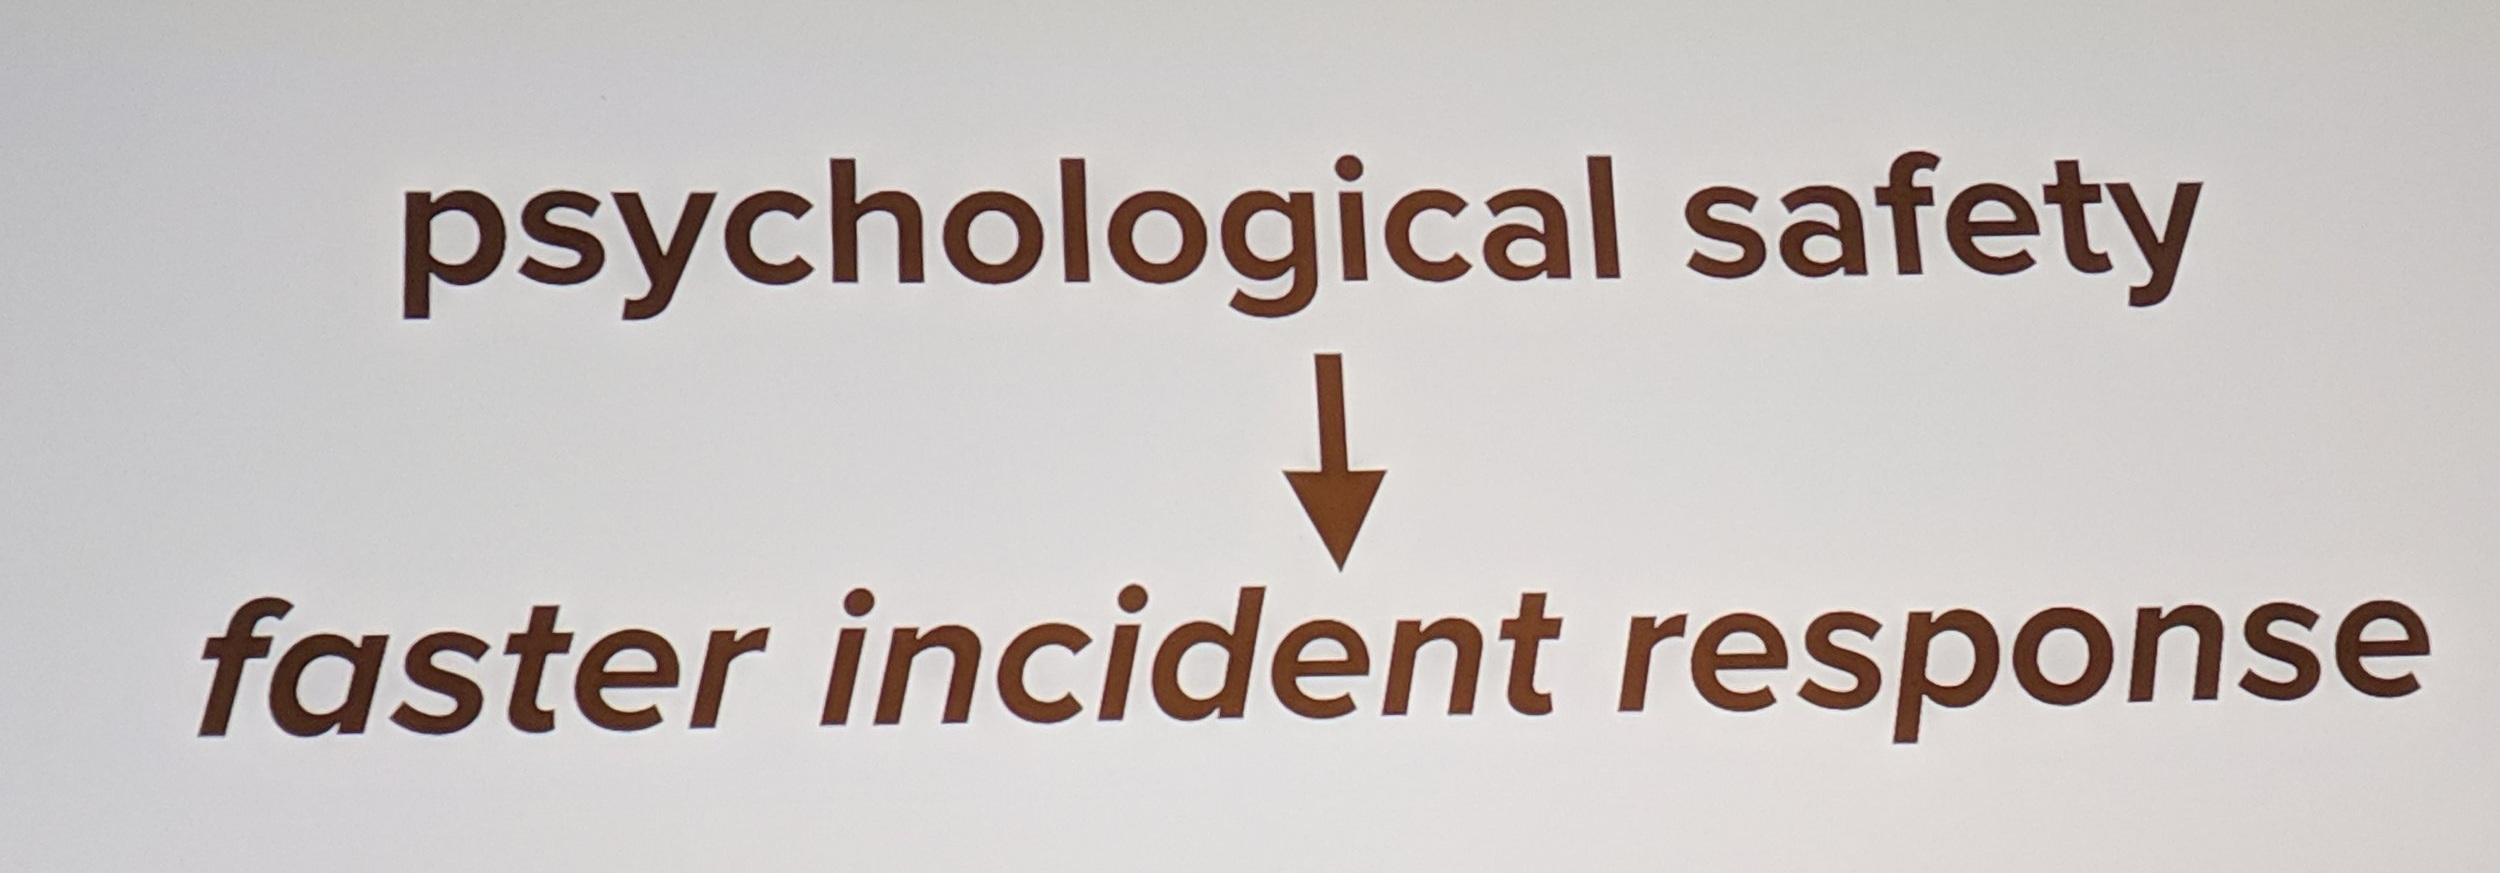 "Psychological safety leads to faster incident response. From Logan McDonald's SRECon talk, "" Optimizing for Learning""."